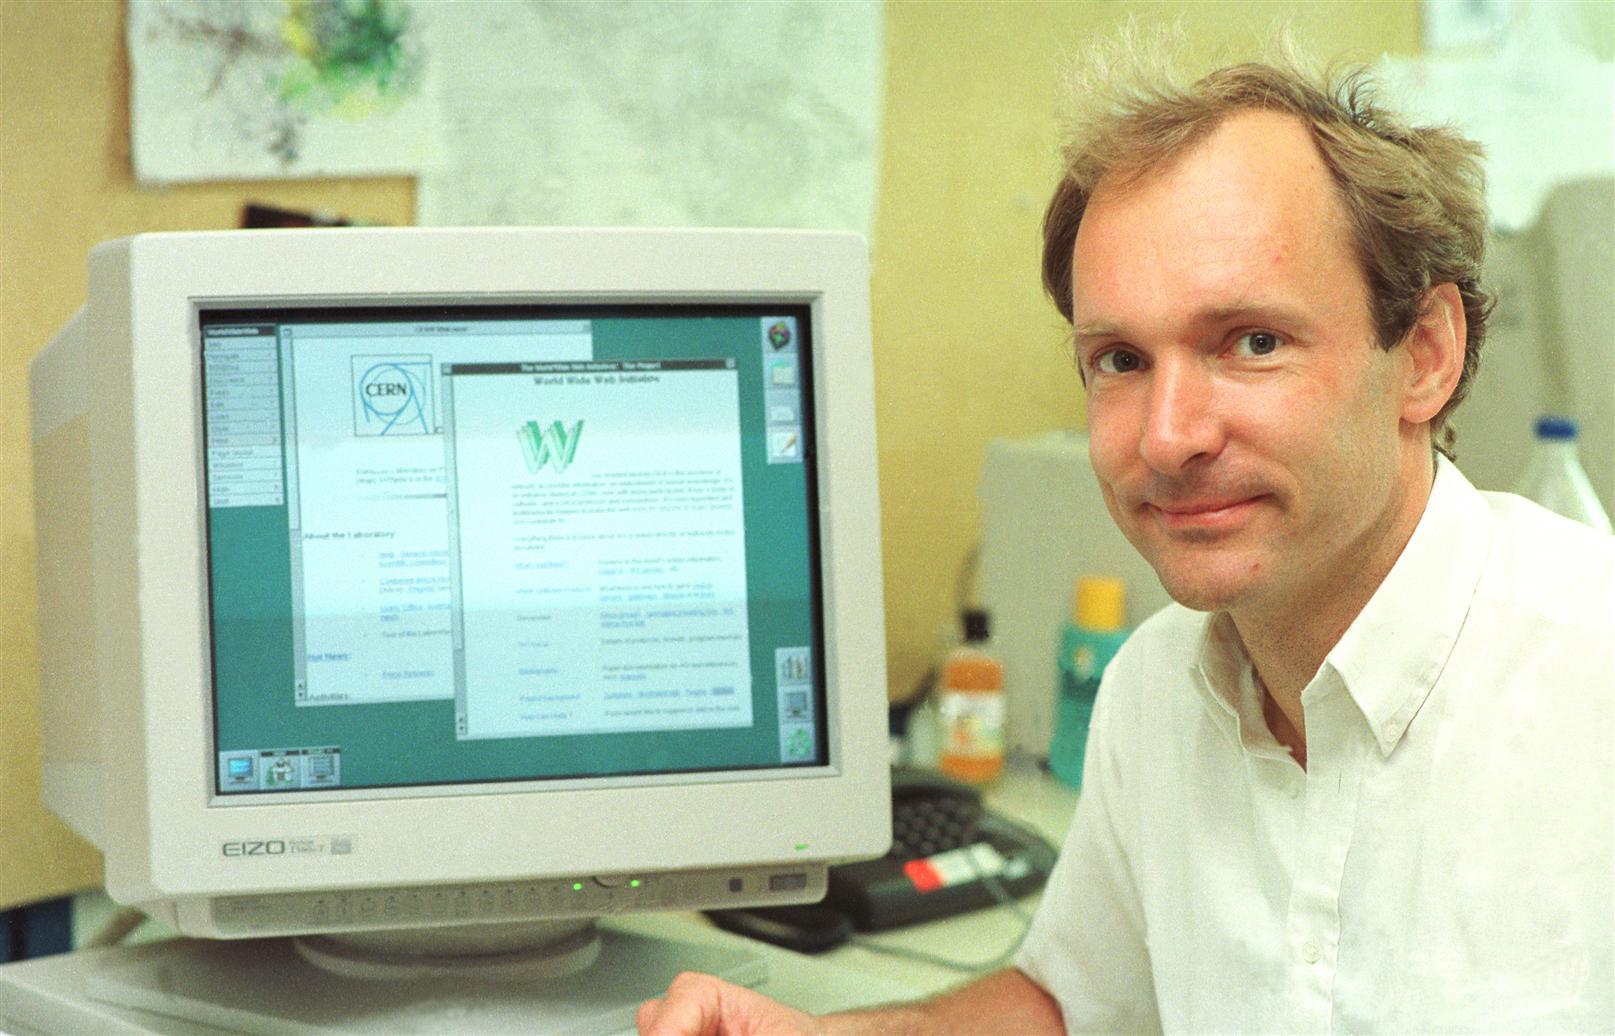 "<p>In 1989, PCs were still a novelty for many folks, and at that point, how many people outside of scientific circles had every heard of something called the Internet? Things were about to start changing, though. </p><p> On March 13 of that year, a fellow named Tim Berners-Lee (seen here in 1994) working at CERN, the European Organization for Nuclear Research, <a href=""http://news.cnet.com/8301-10787_3-10195512-60.html"">made a proposal</a> that rather drily addressed ""the problems of loss of information about complex evolving systems"" and proposed ""a solution based on a distributed hypertext system.""</p><p> What it gave birth to was the World Wide Web, and thus, eventually, Facebook, eBay, Google, iTunes, YouTube, Pets.com, blogs....  </p>"